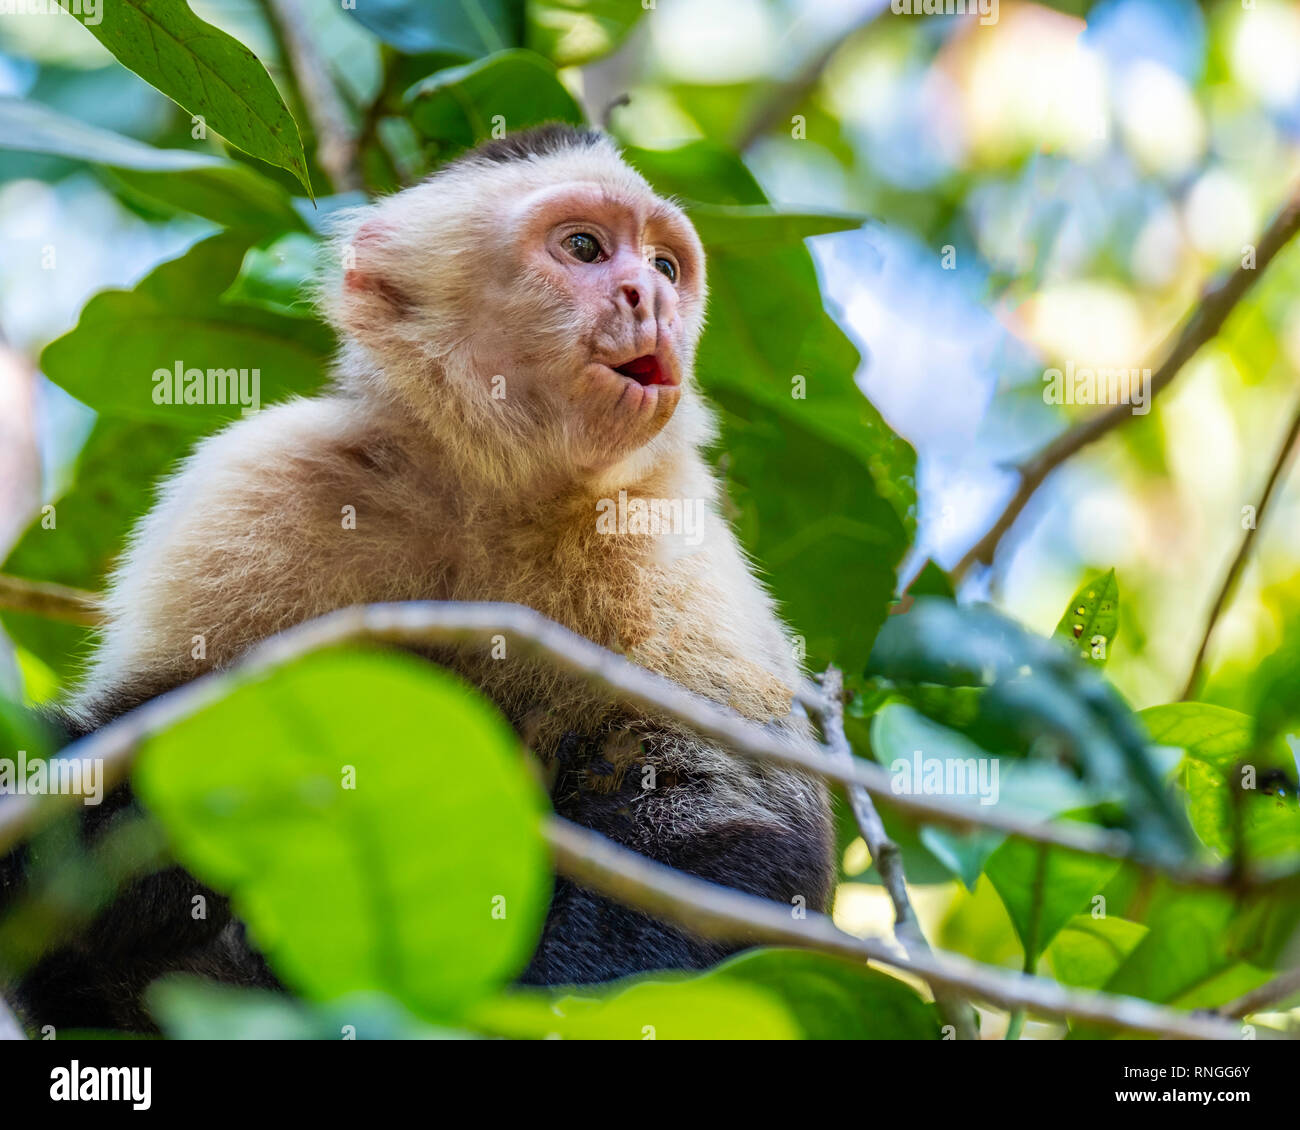 In Manuel Antonio National Park in Costa Rica, a young white face monkey sits in a tree with its mouth open and lips pursed as it howls. - Stock Image